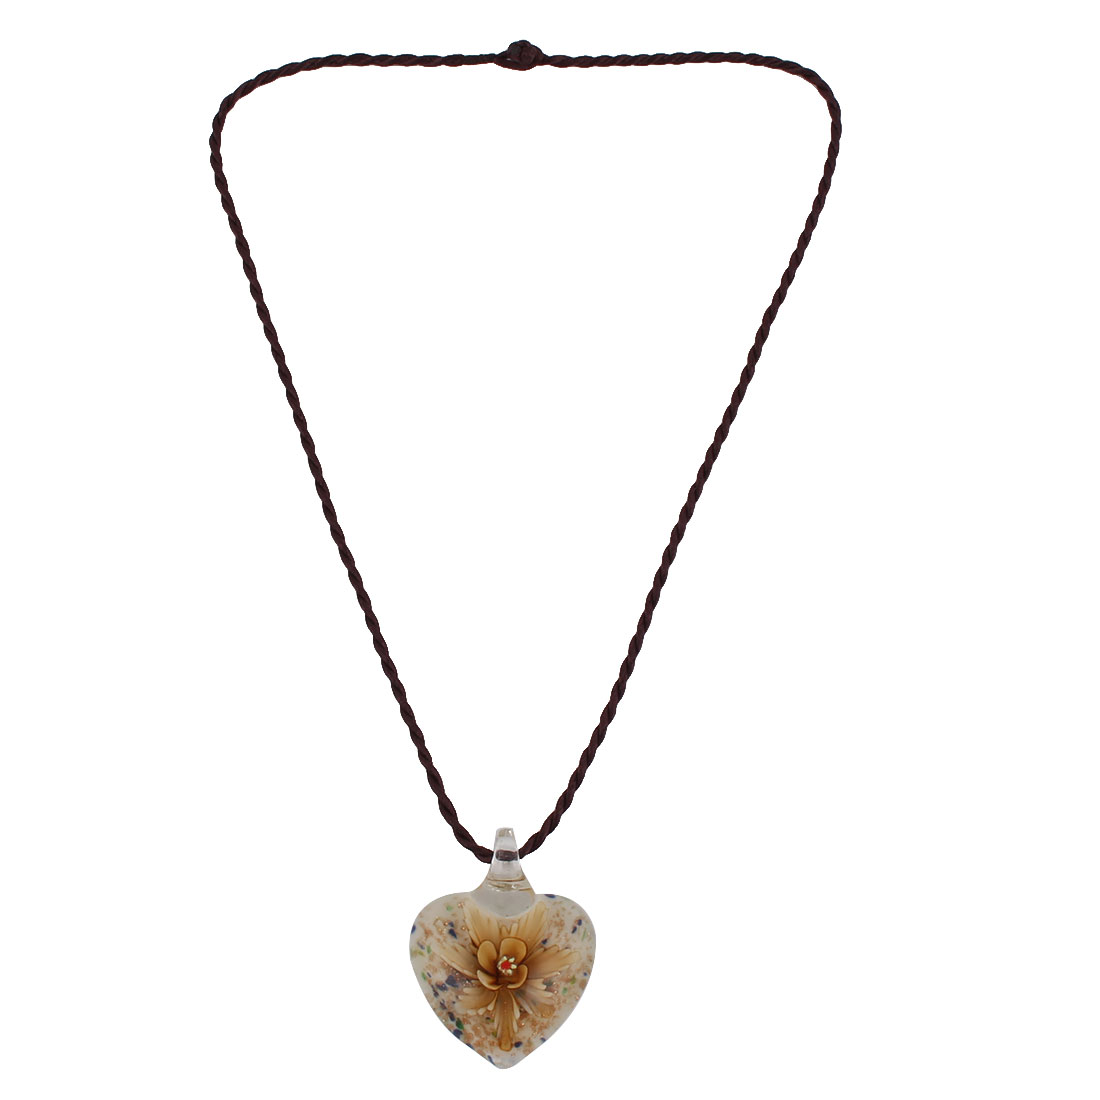 Party Glass Nylon Rope Floral Pattern Heart Shaped Pendant Necklet Necklace